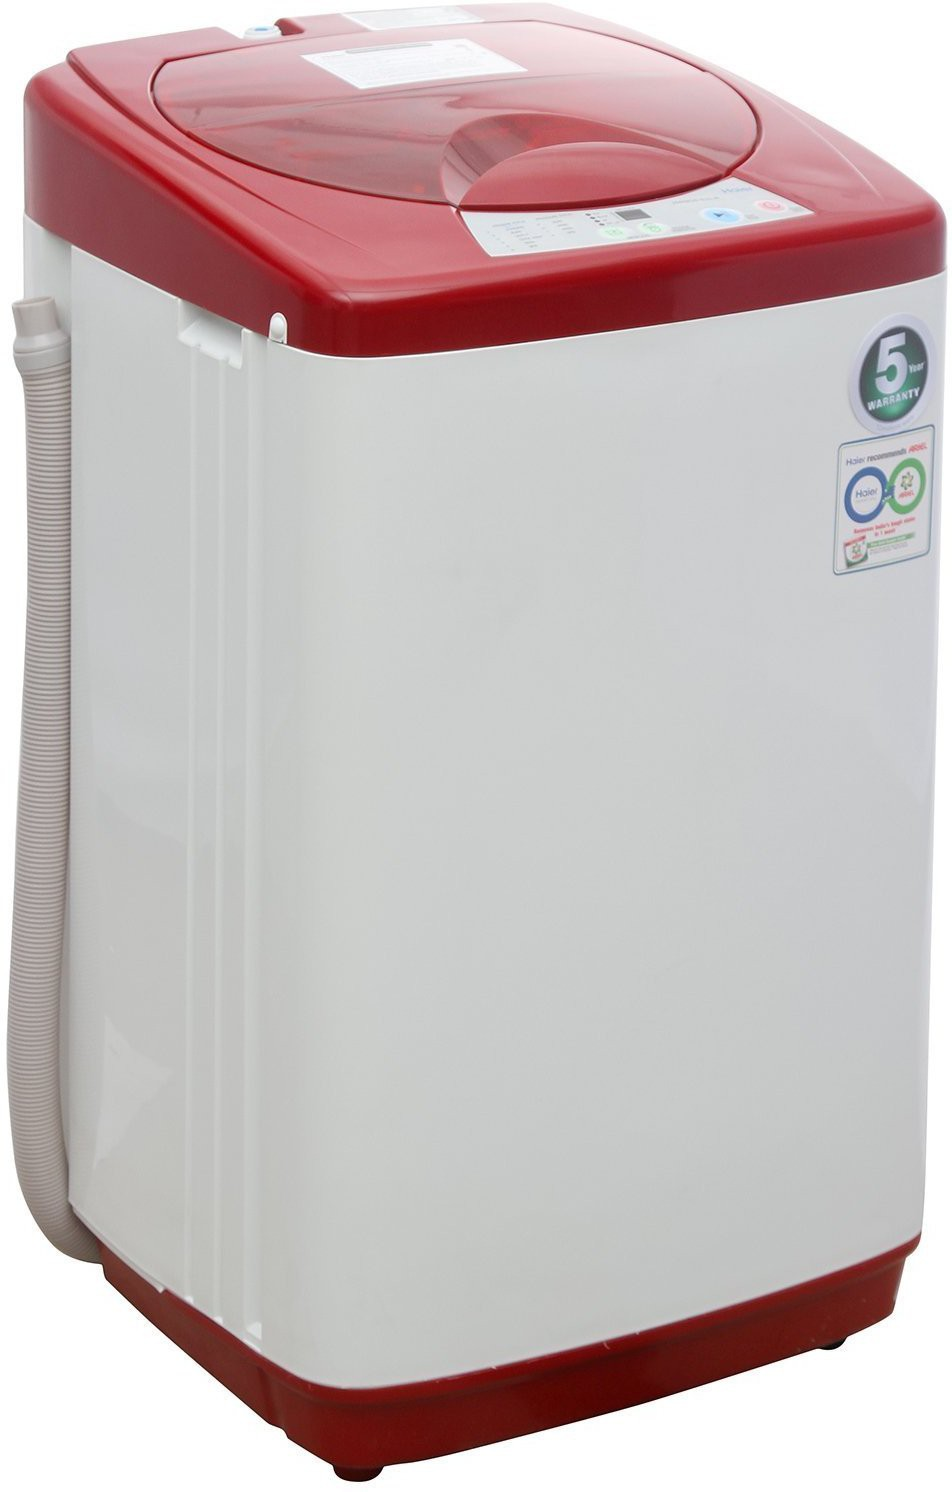 Haier 5.8 kg Fully Automatic Top Load Washing Machine (HWM58-020-R) Image